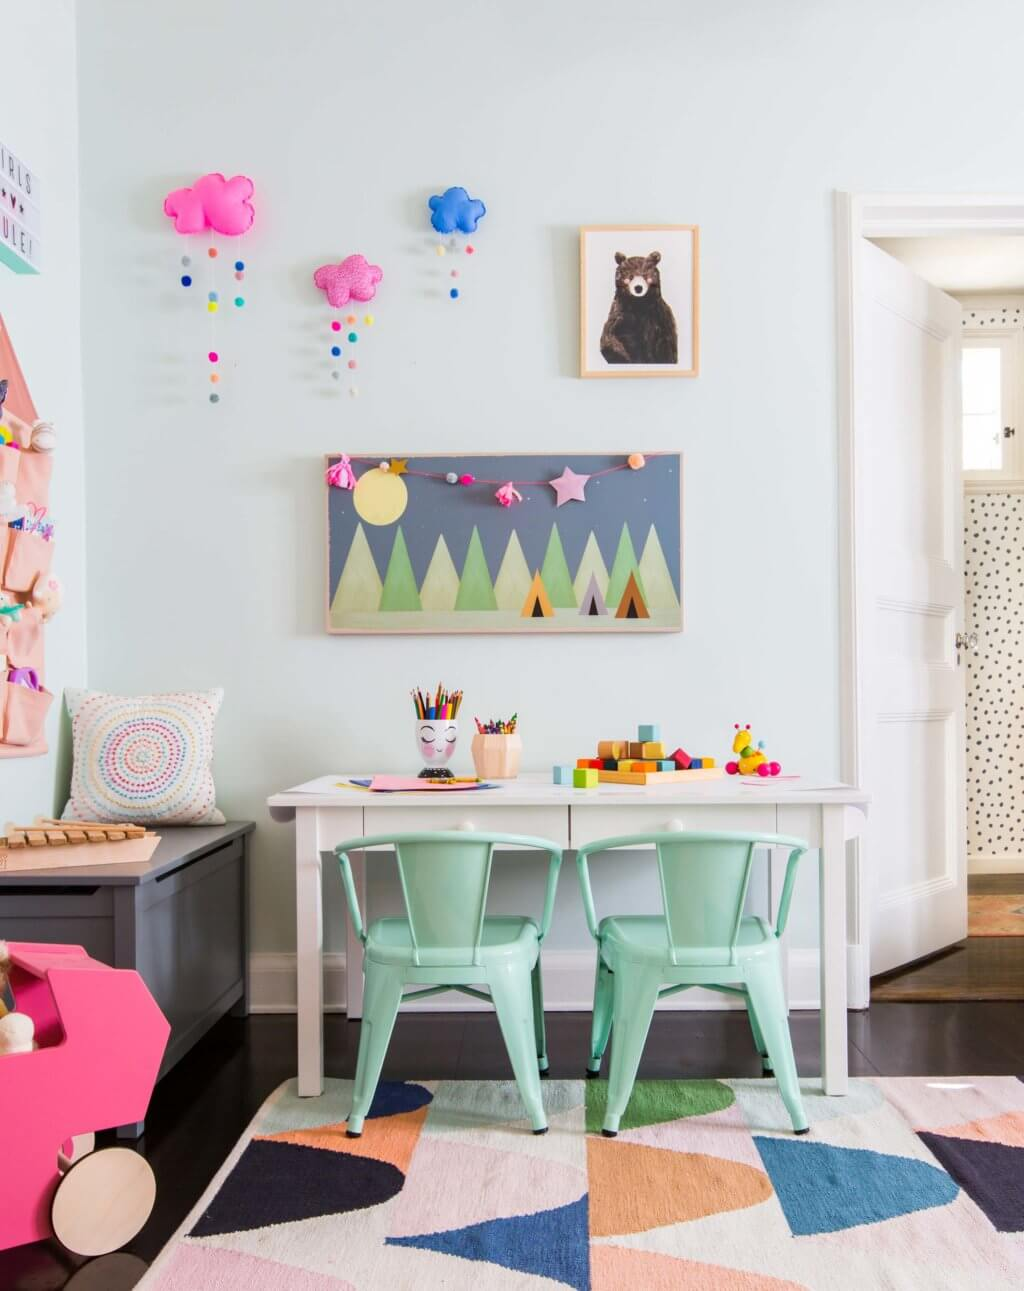 05_Ginny_Macdonald_Full-Design_Girls-Playroom_Whimsical_Pink_Playful